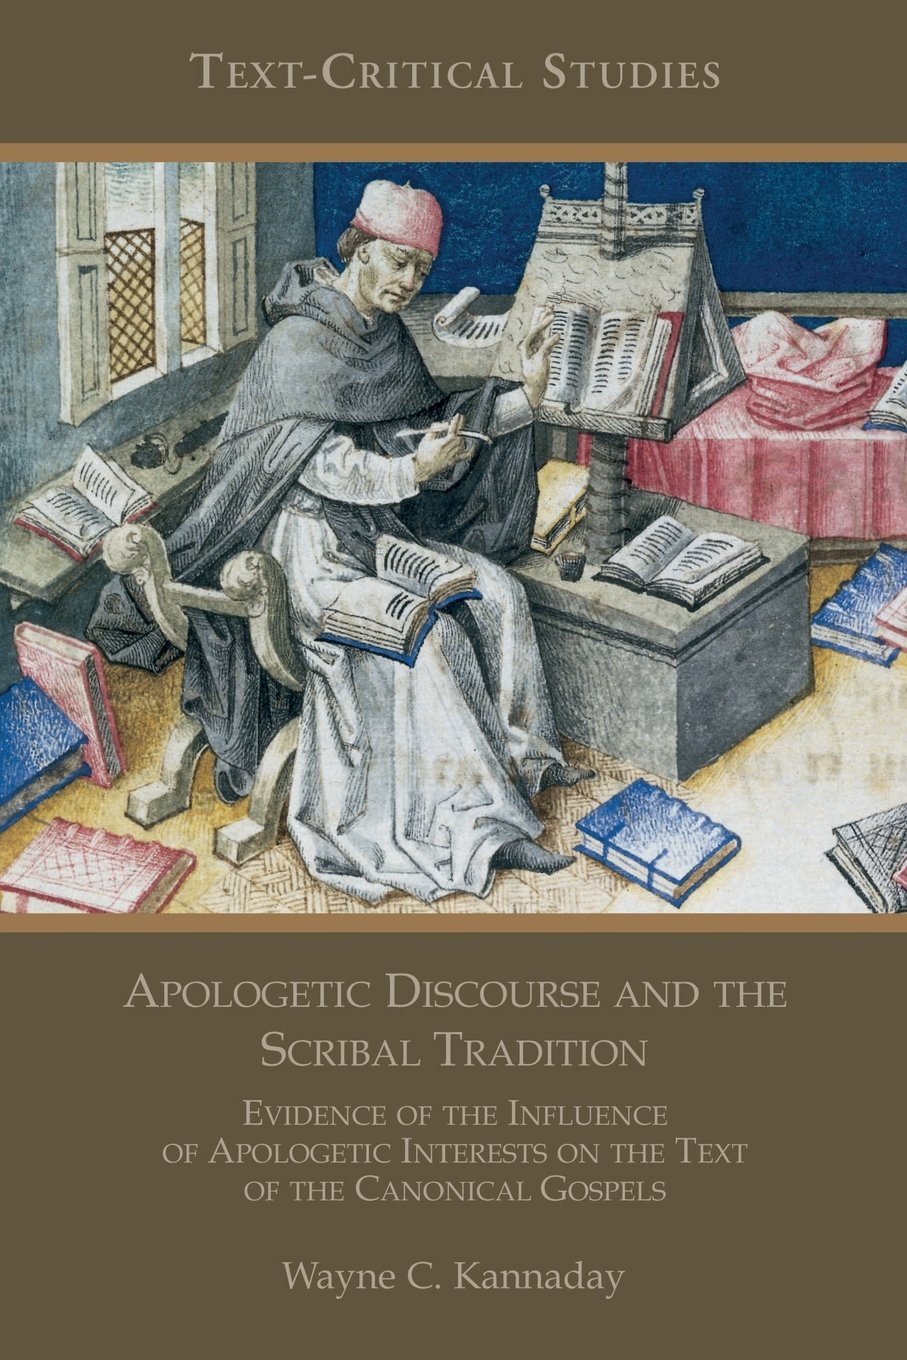 Apologetic Discourse and the Scribal Tradition: Evidence of the Influence of Apologetic Interests on the Text of the Canonical Gospels (Society of Biblical Literature Text-Critical Studies) pdf